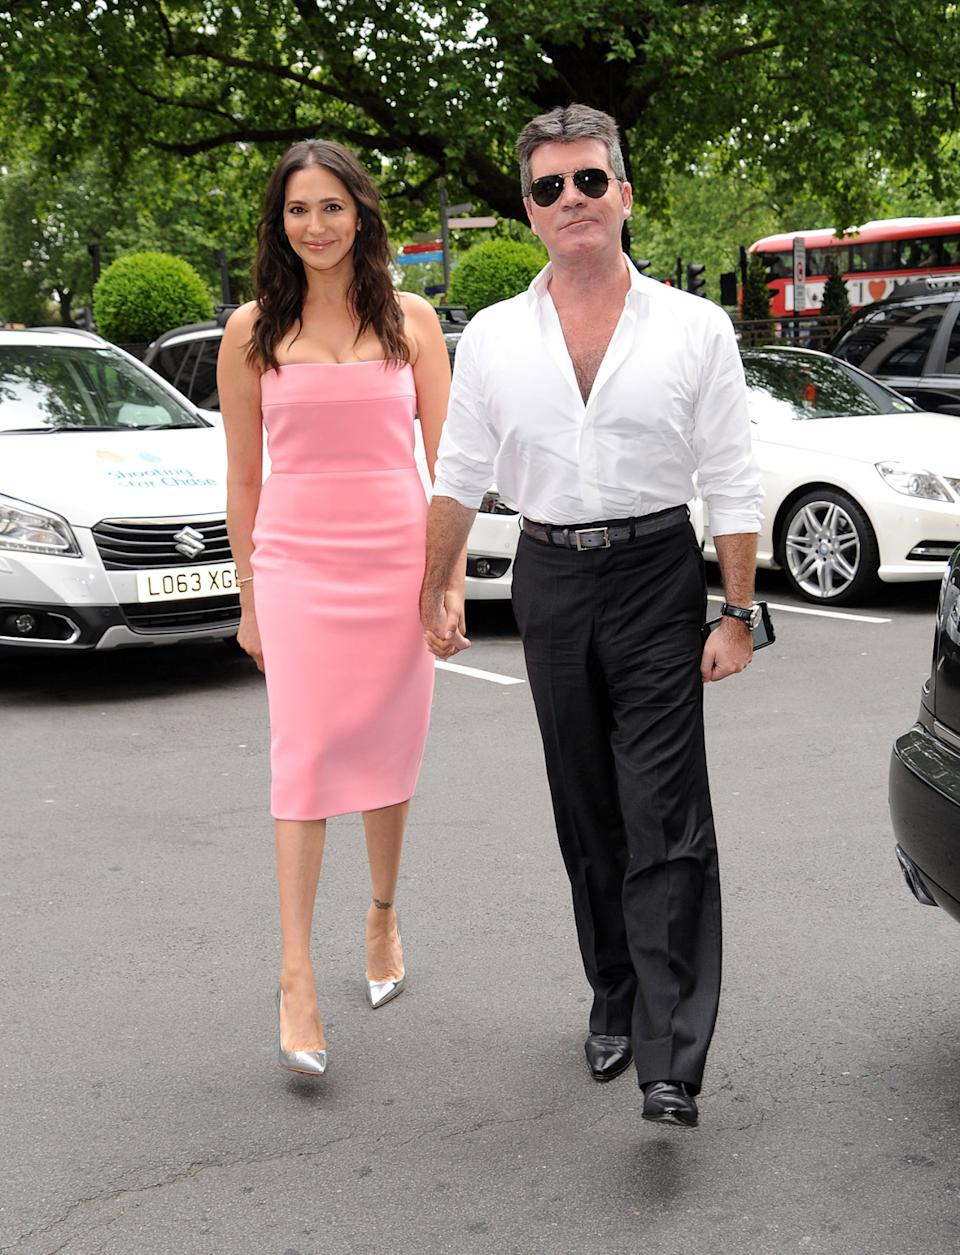 Simon Cowell Not Proud Of Affair With Friend S Wife Will Their Relationship Work